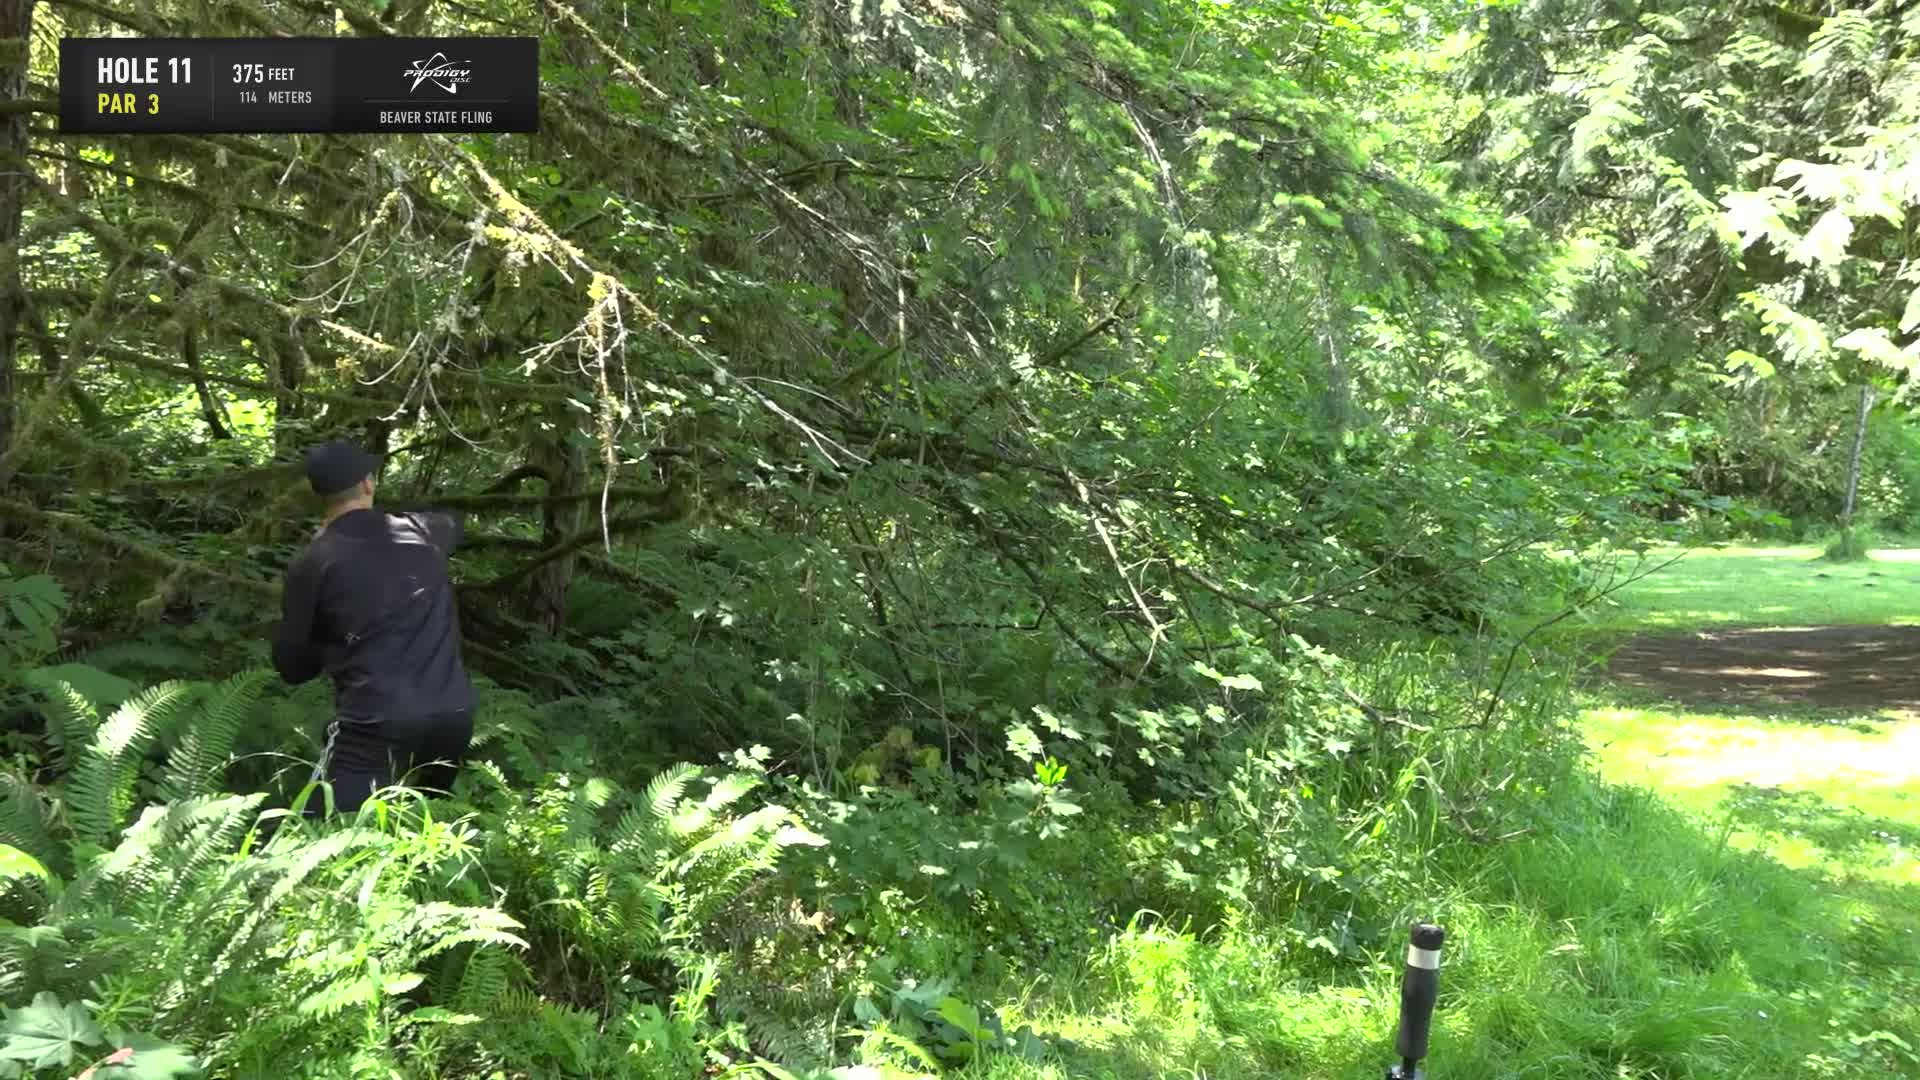 ace, bsf, dela, delaveaga, dgpt, dgwt, disc, disc golf, frolf, hole in one, masters cup, mcbeast, milo, nate sexton, nt, paul mcbeth, pdga, simon lizotte, tournament, worlds, 2019 Beaver State Fling - Round 3 Part 2 - Seppo Paju hole 11 approach GIFs